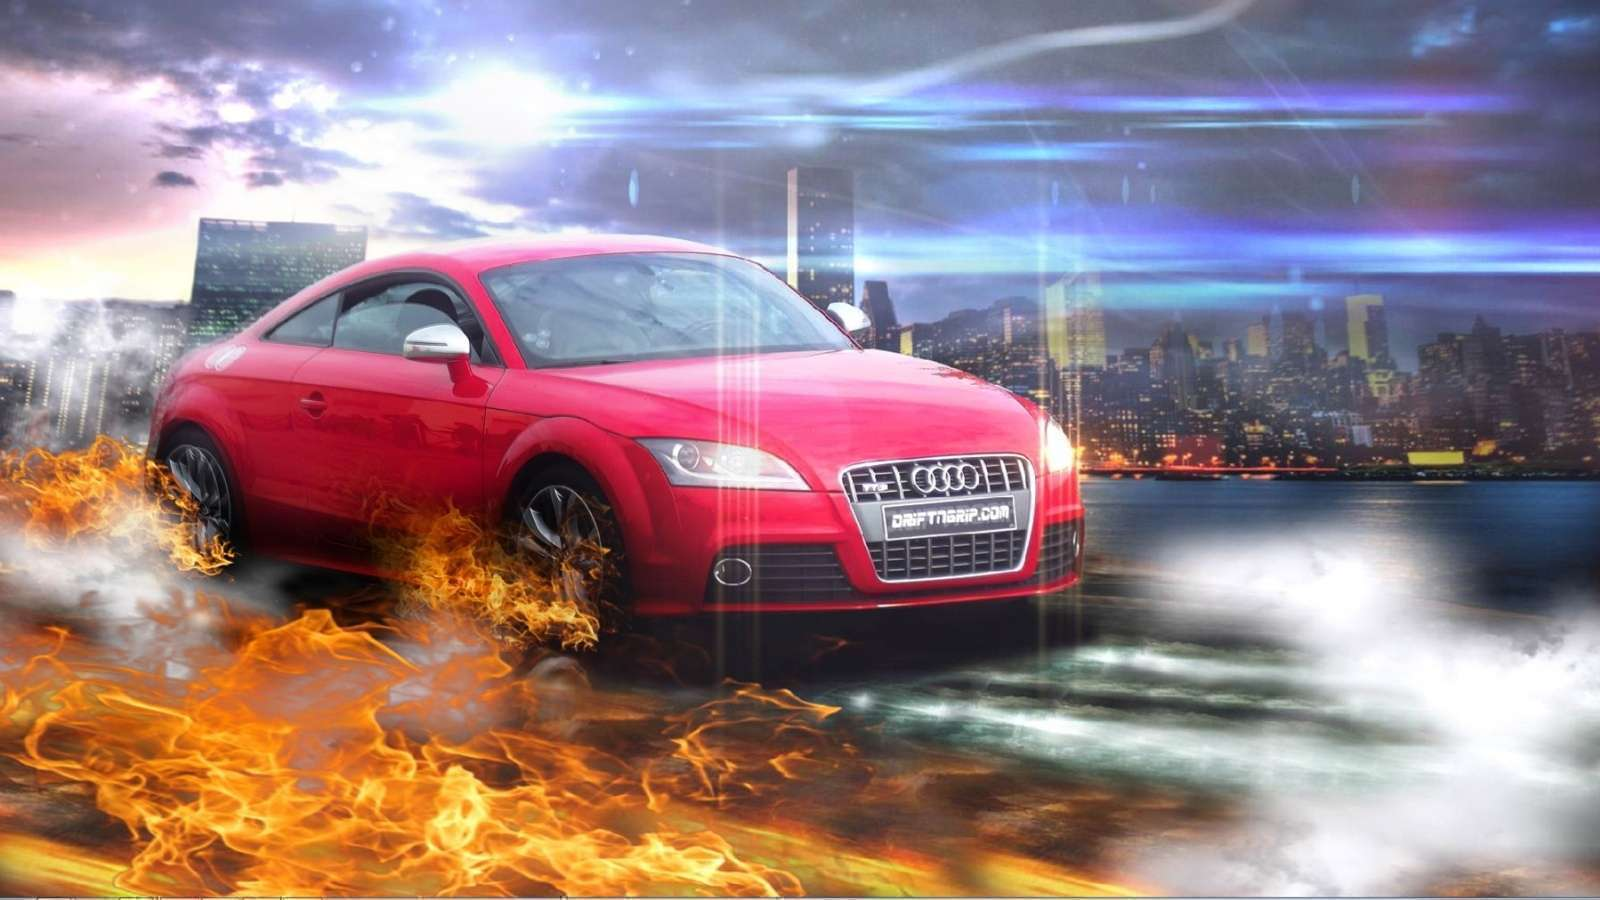 Audi Red In Fire Wallpaper Hd Car Wallpapers 1600x900